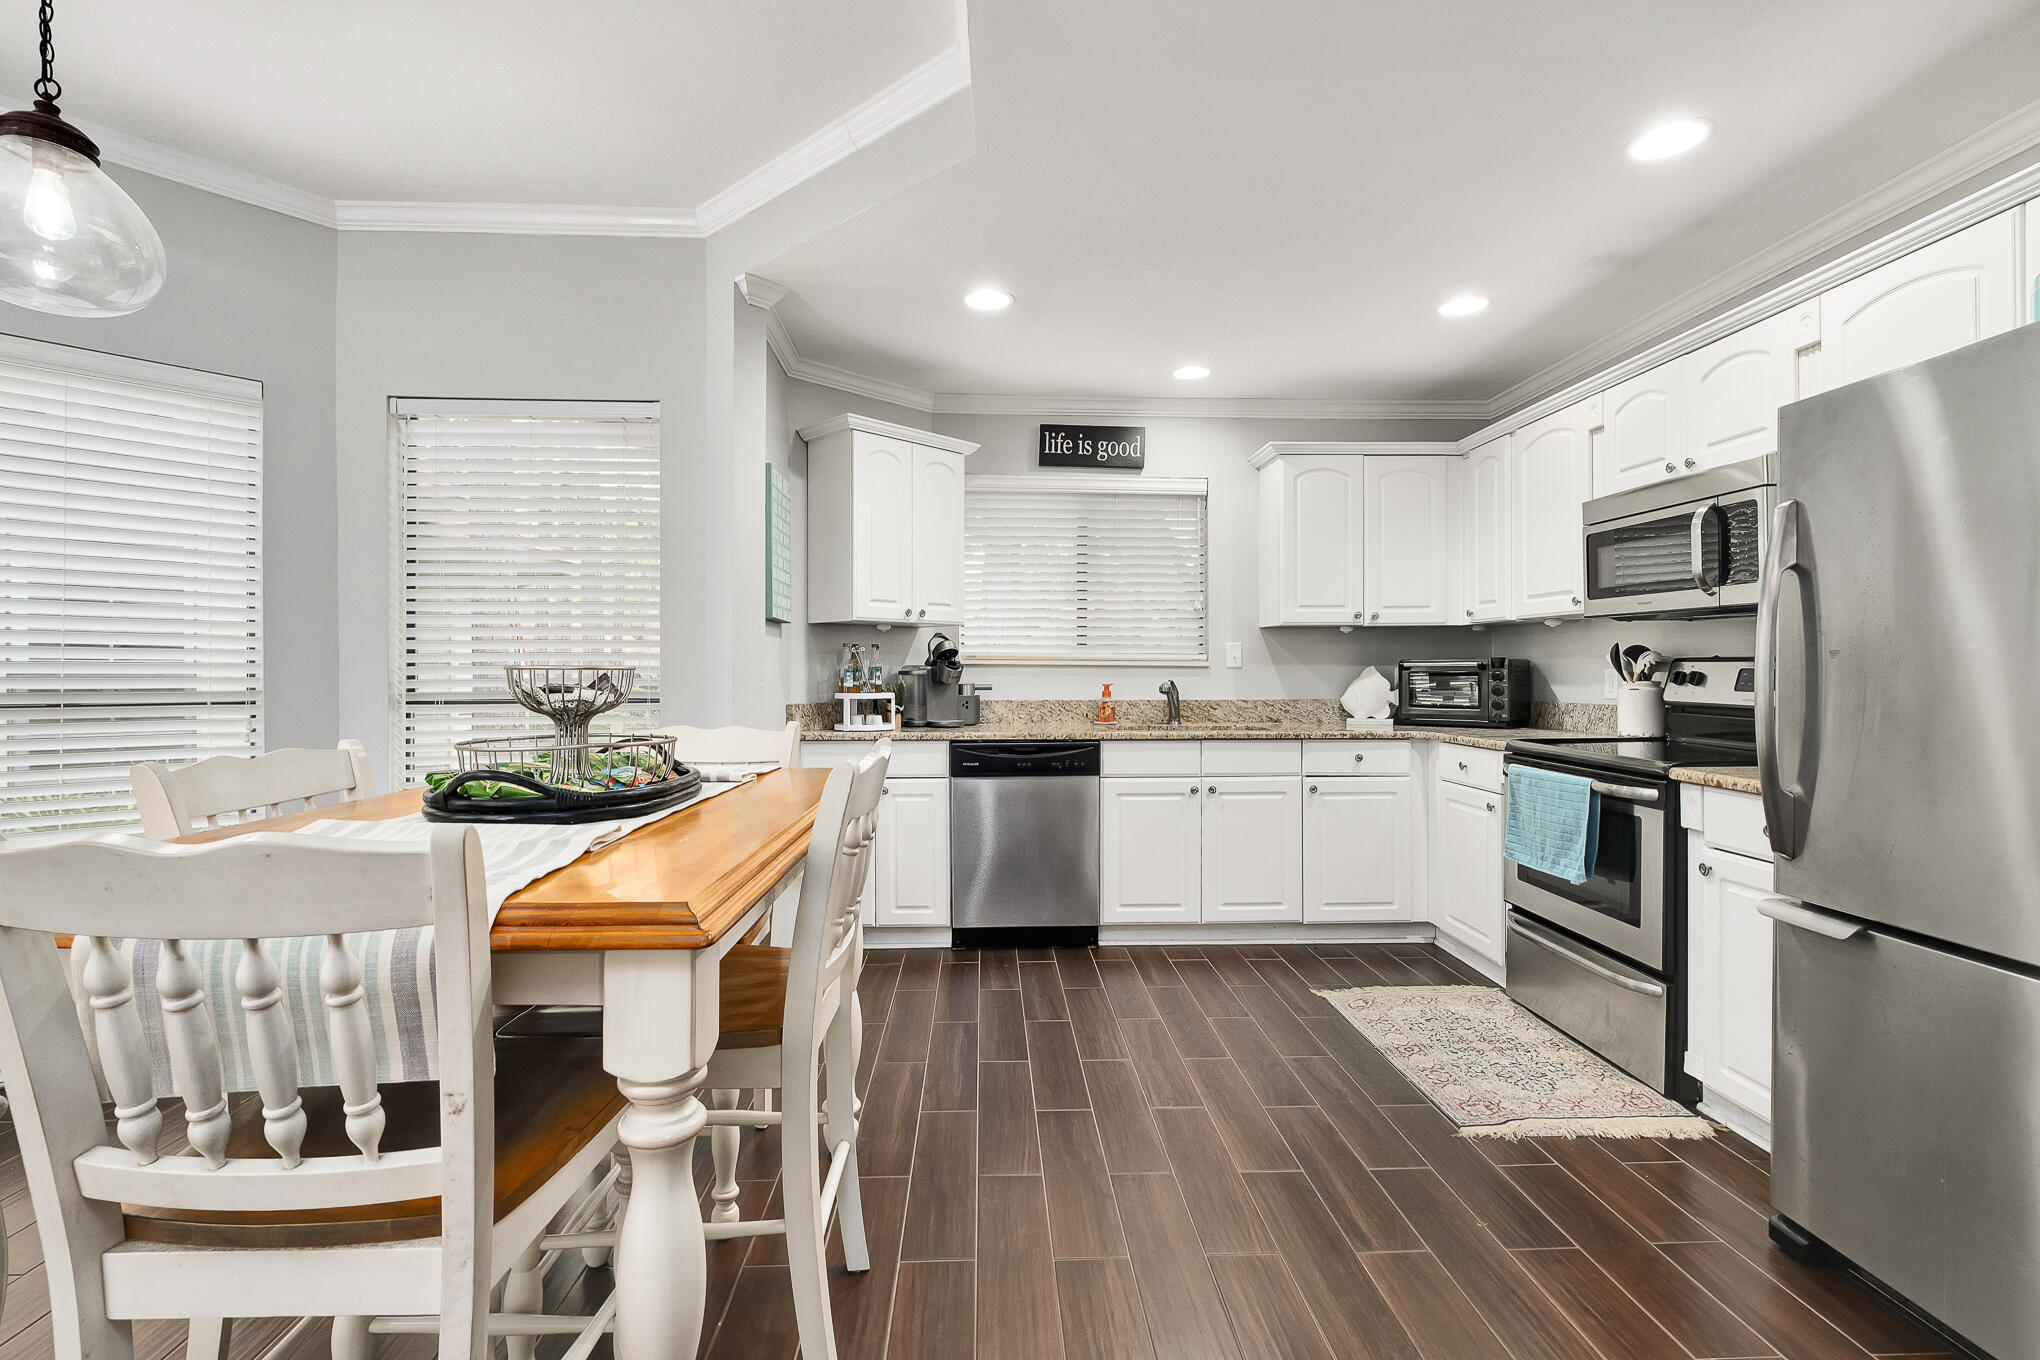 dave-warren-real-estate-photography-5